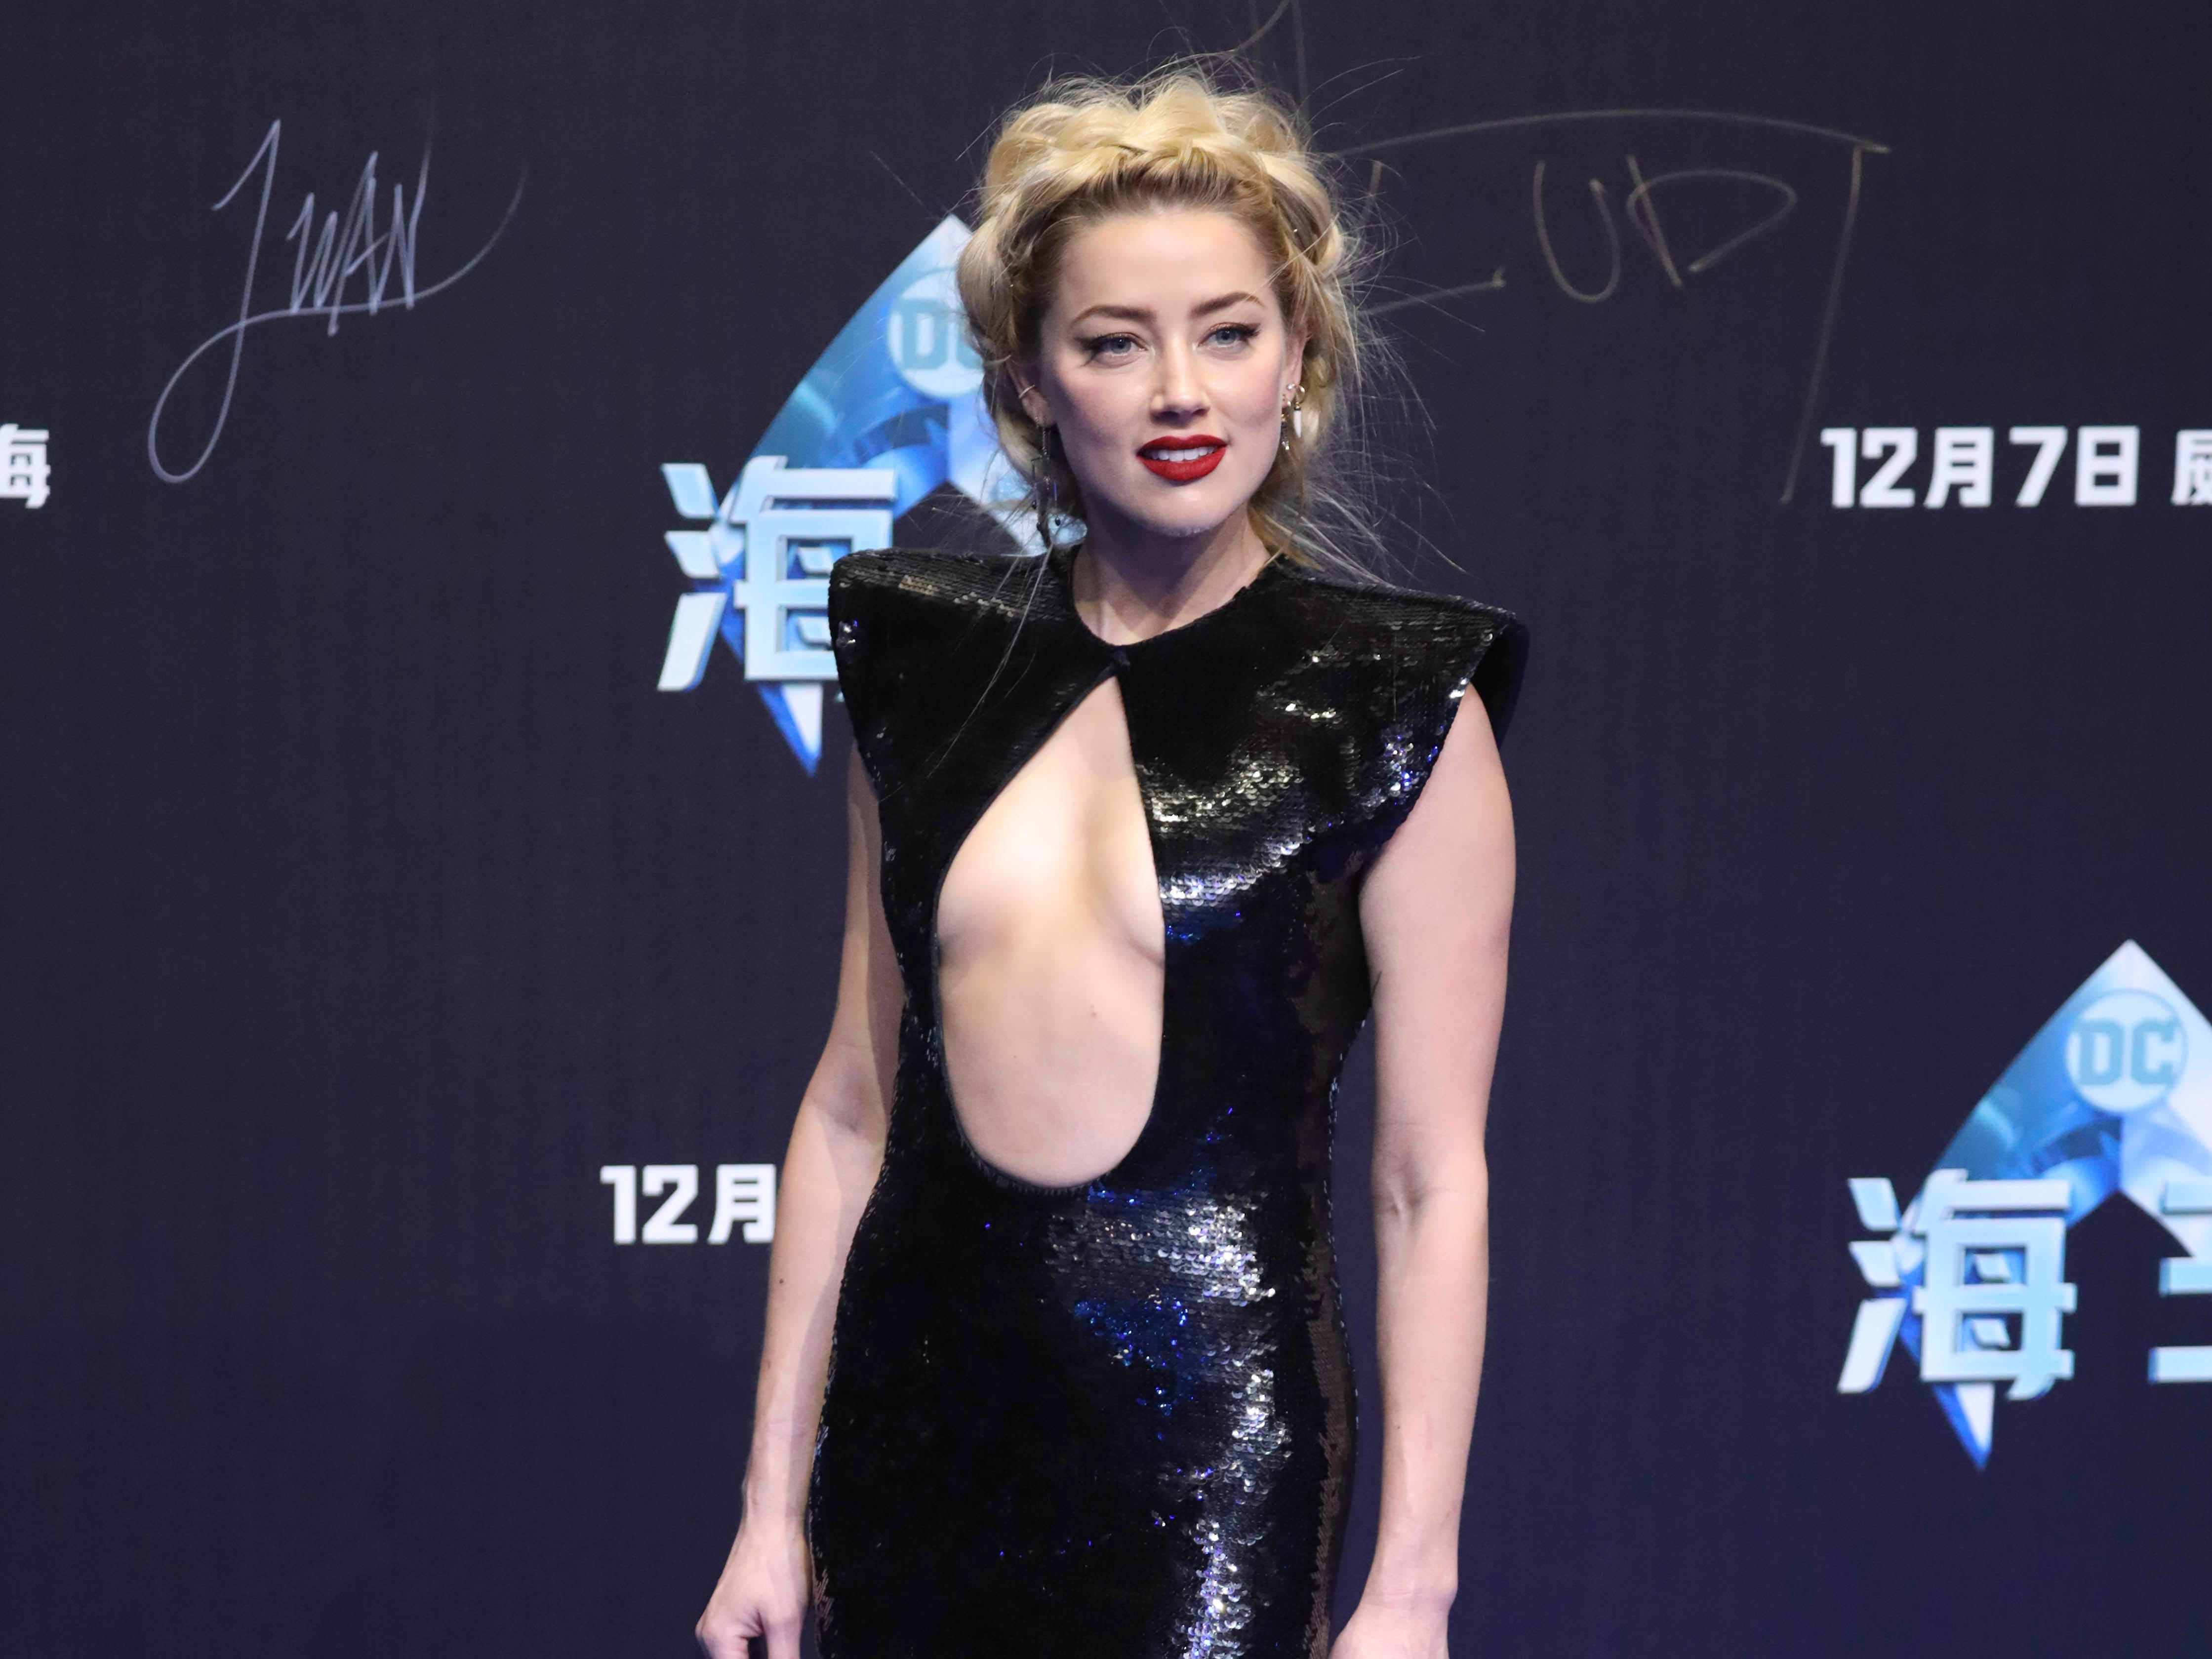 Actress Amber Heard poses for a photo during an event in Beijing, China, Sunday, Nov. 18, 2018, ahead of the Aquaman movie's December world premiere. (AP Photo/Ng Han Guan) ORG XMIT: XHG106